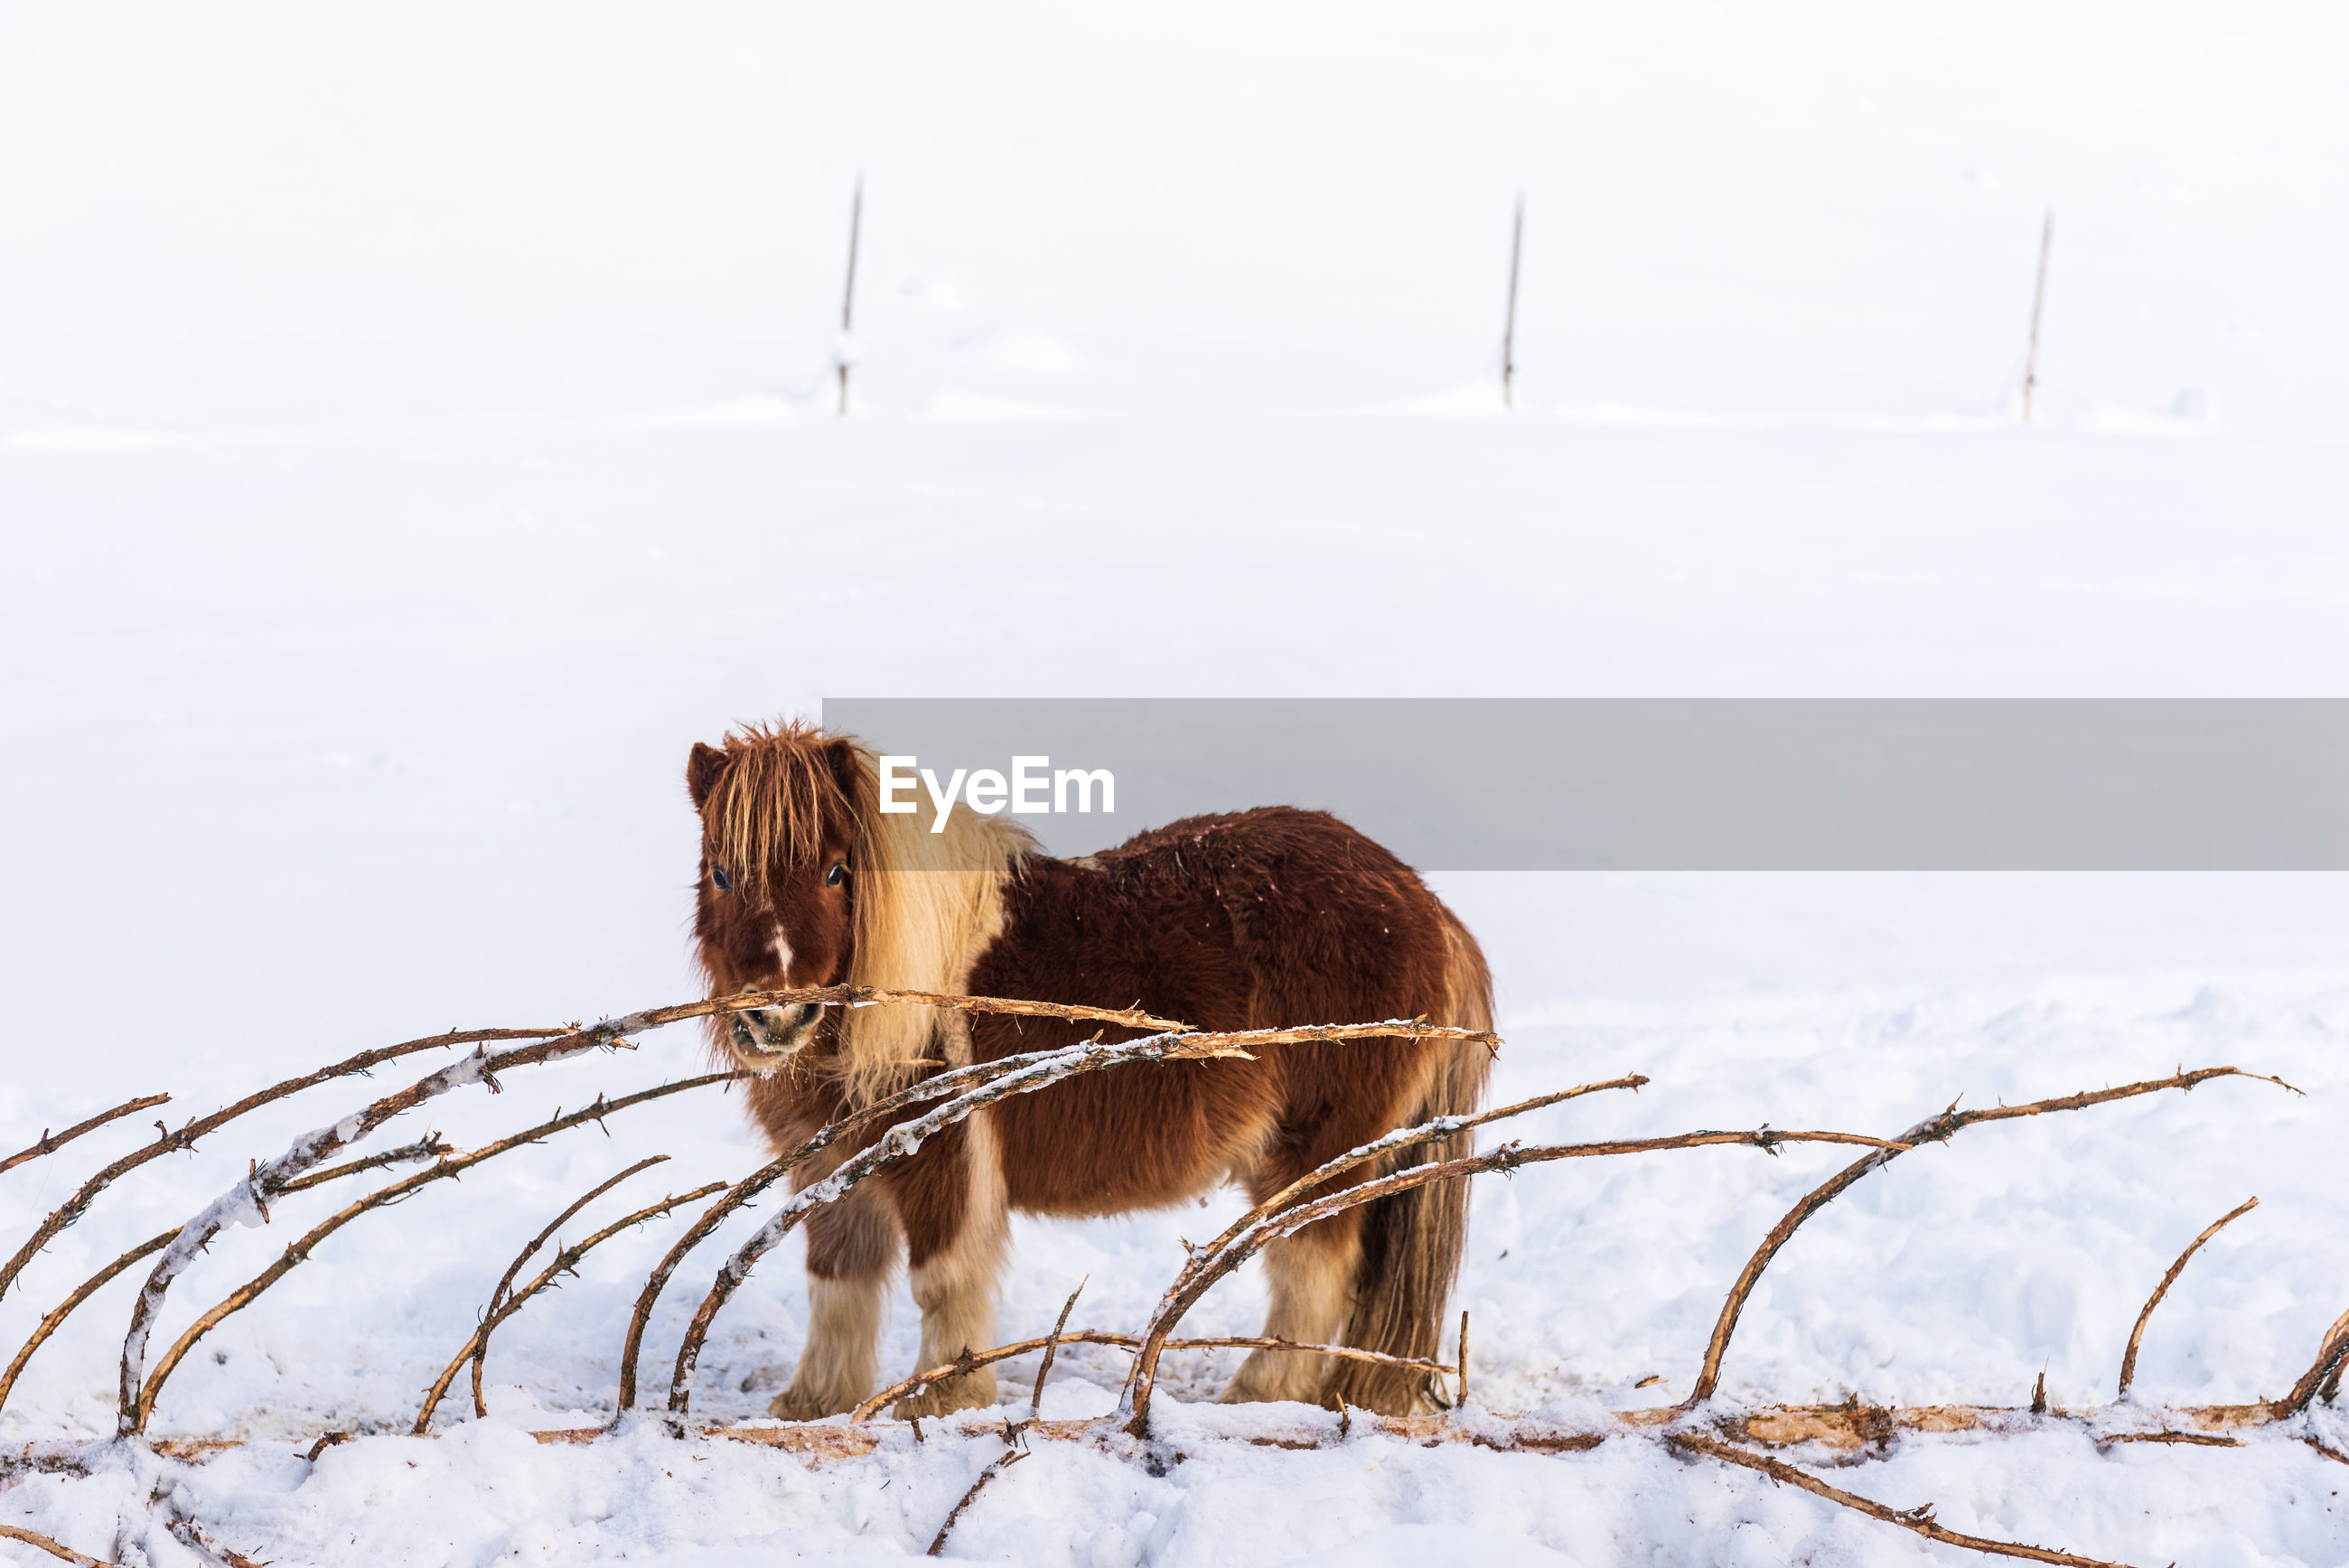 A pony standing on the snow next to a bitten coniferous tree. in the background the paddock fence.